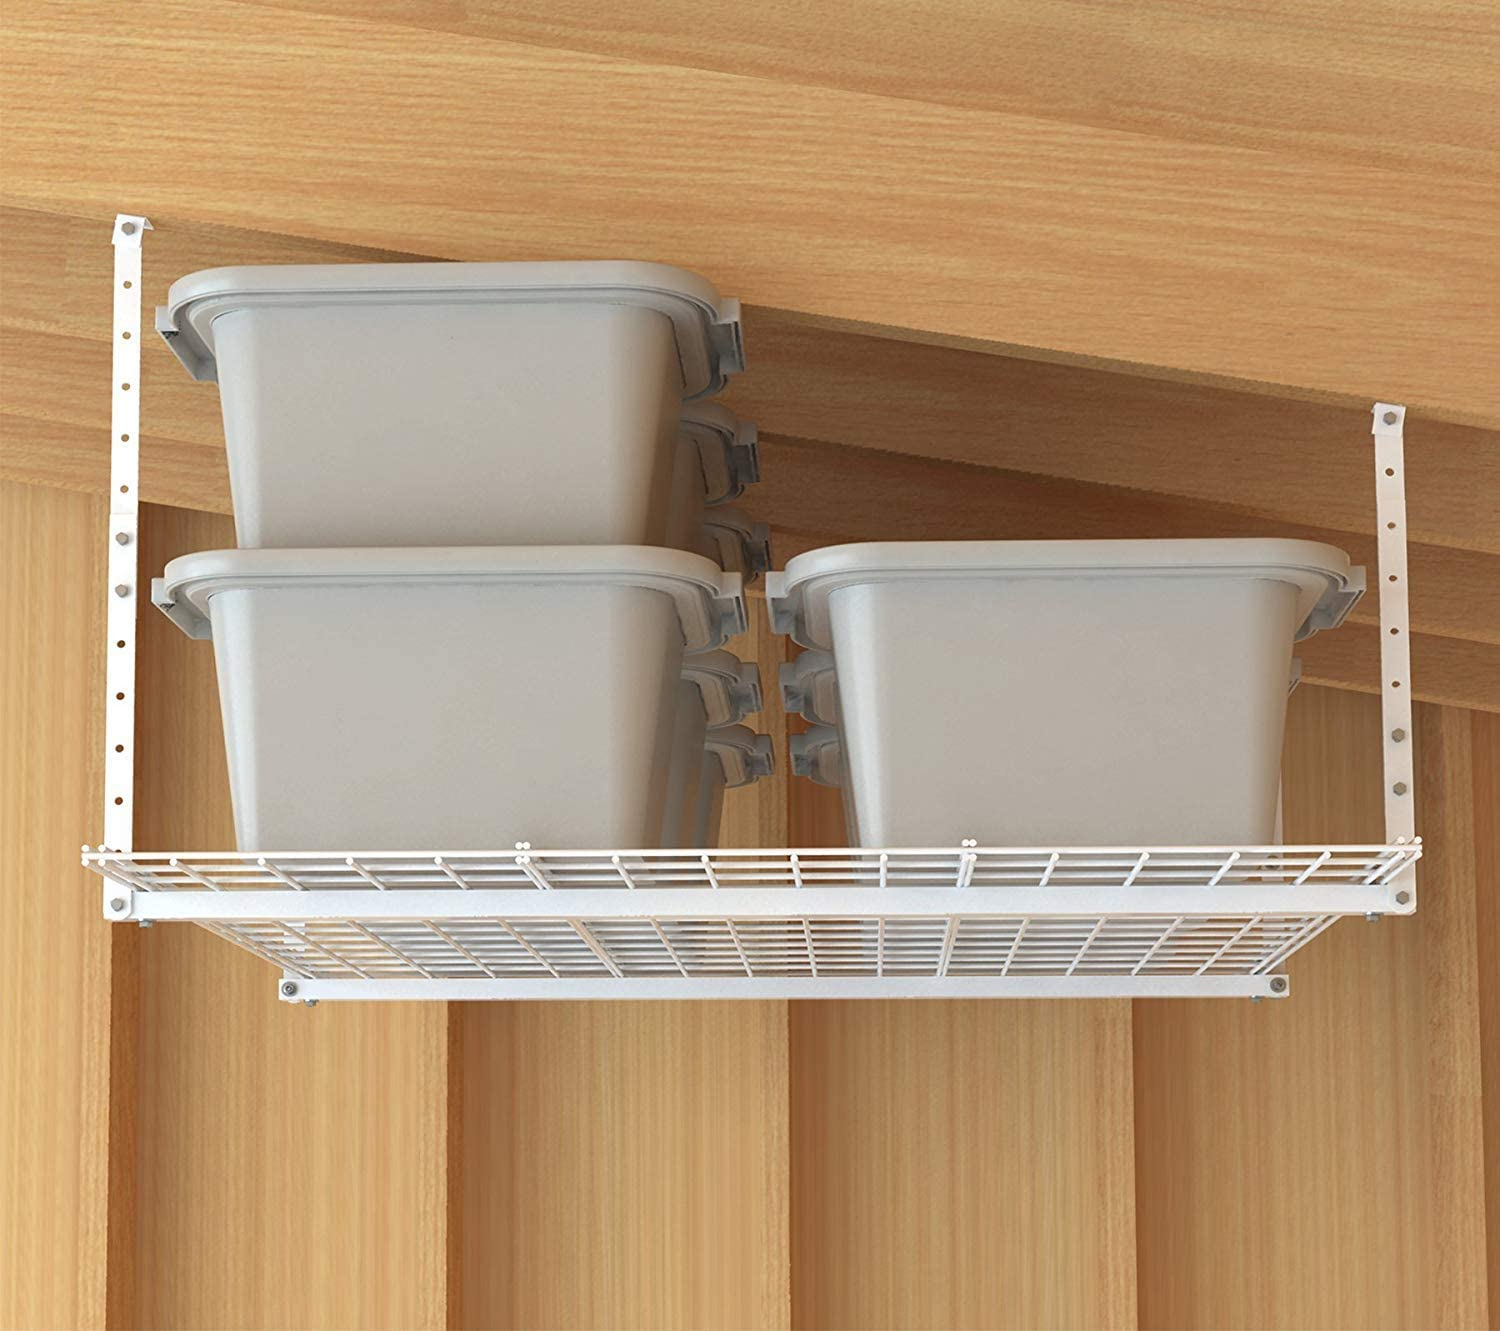 HyLoft 45-Inch by 45-Inch Overhead Storage System, Ceiling Mount Garage Organization Rack